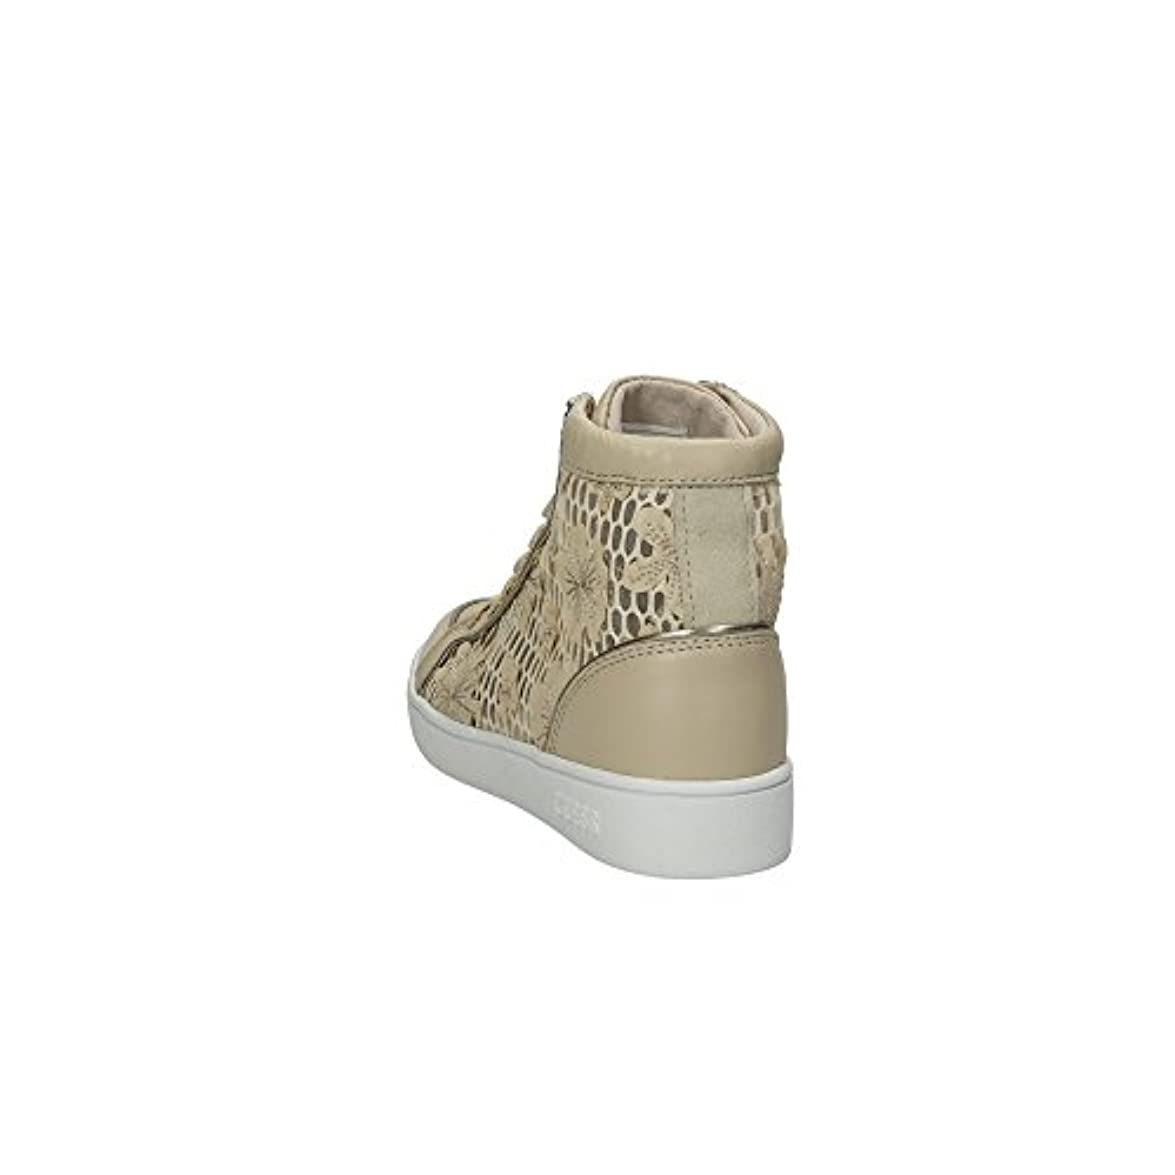 Guess Donna Sneakers Alte Flgrc1-ele12 Beige